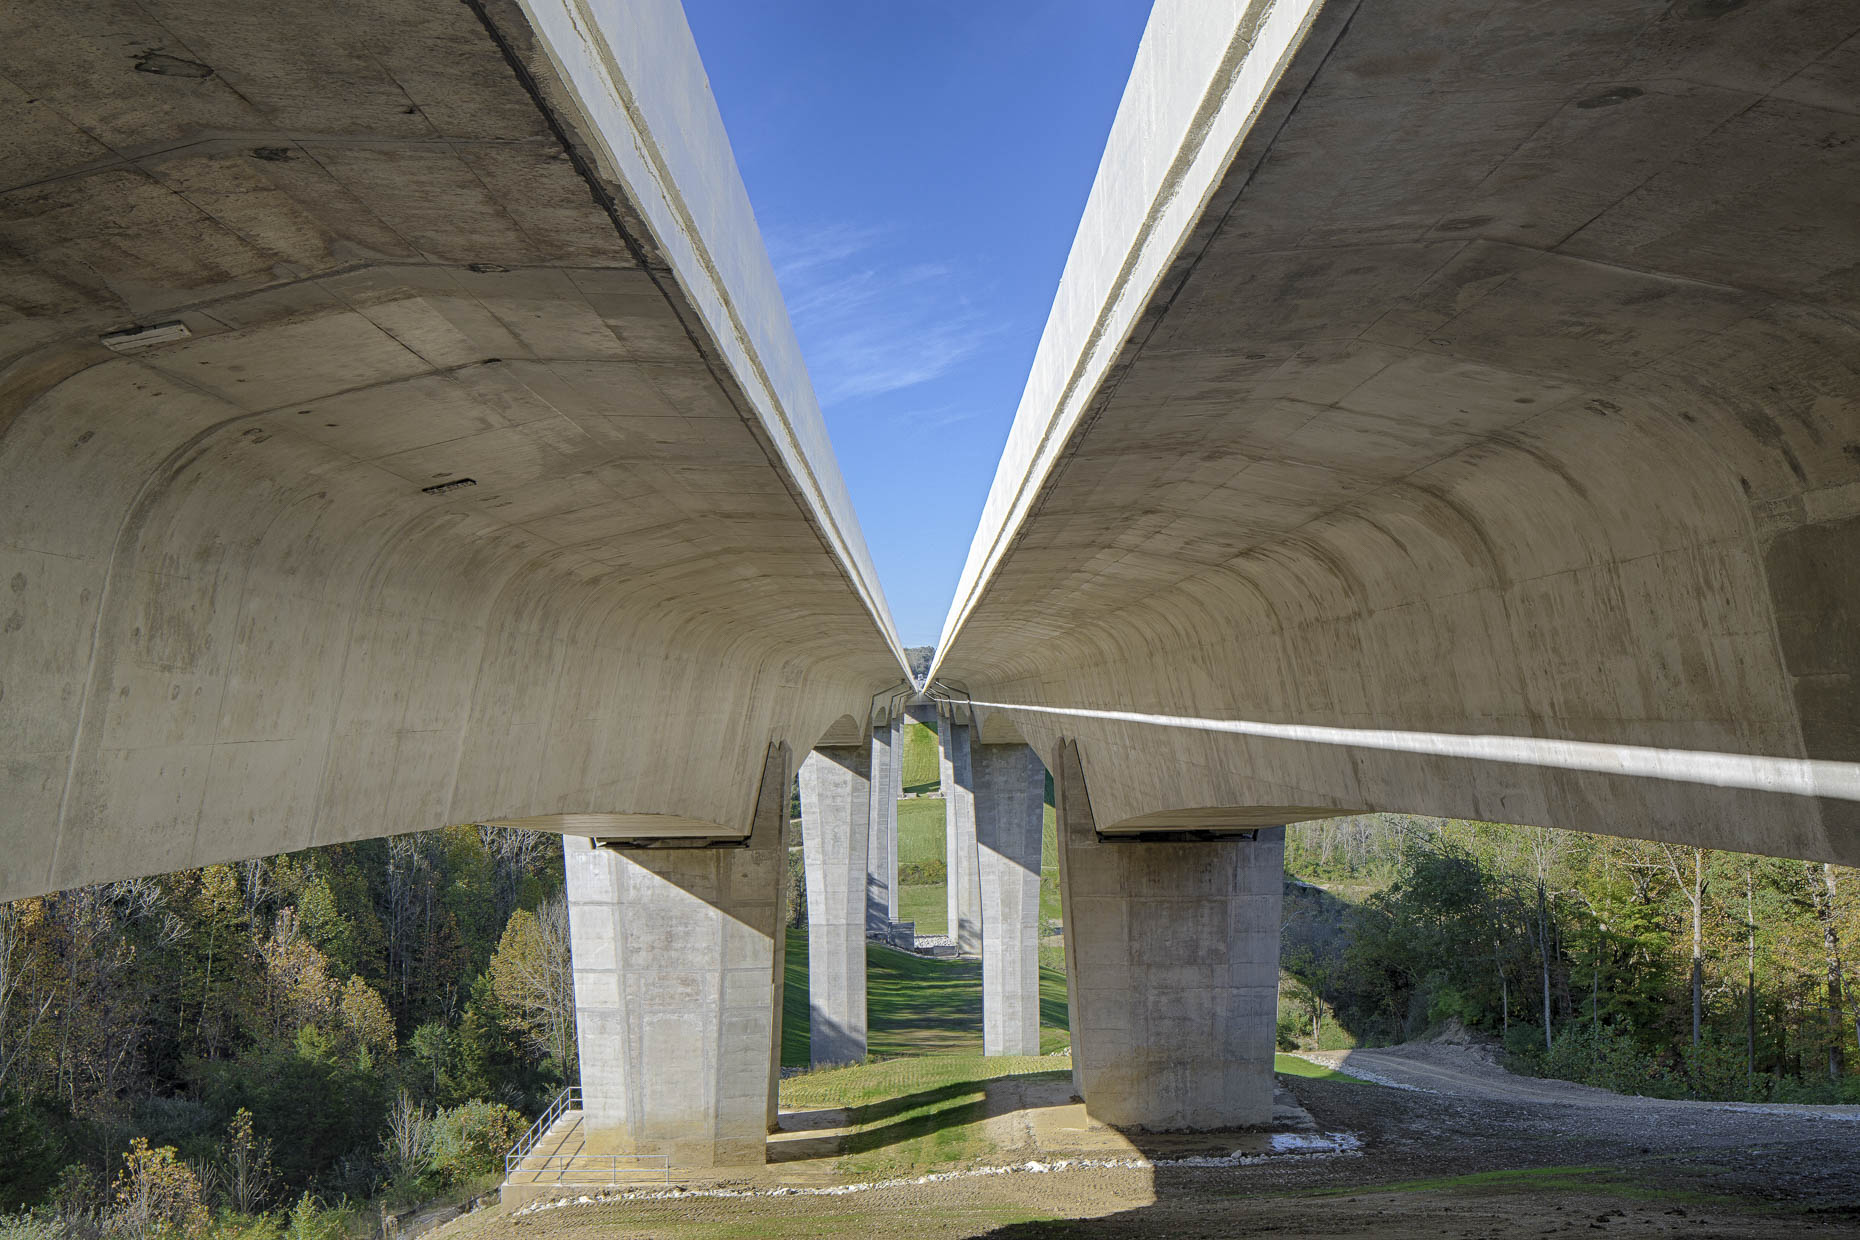 US I-71 Jeremiah Morrow Bridge by Kokosing Construction & HNTB photographed by Lauren K Davis based in Columbus, Ohio